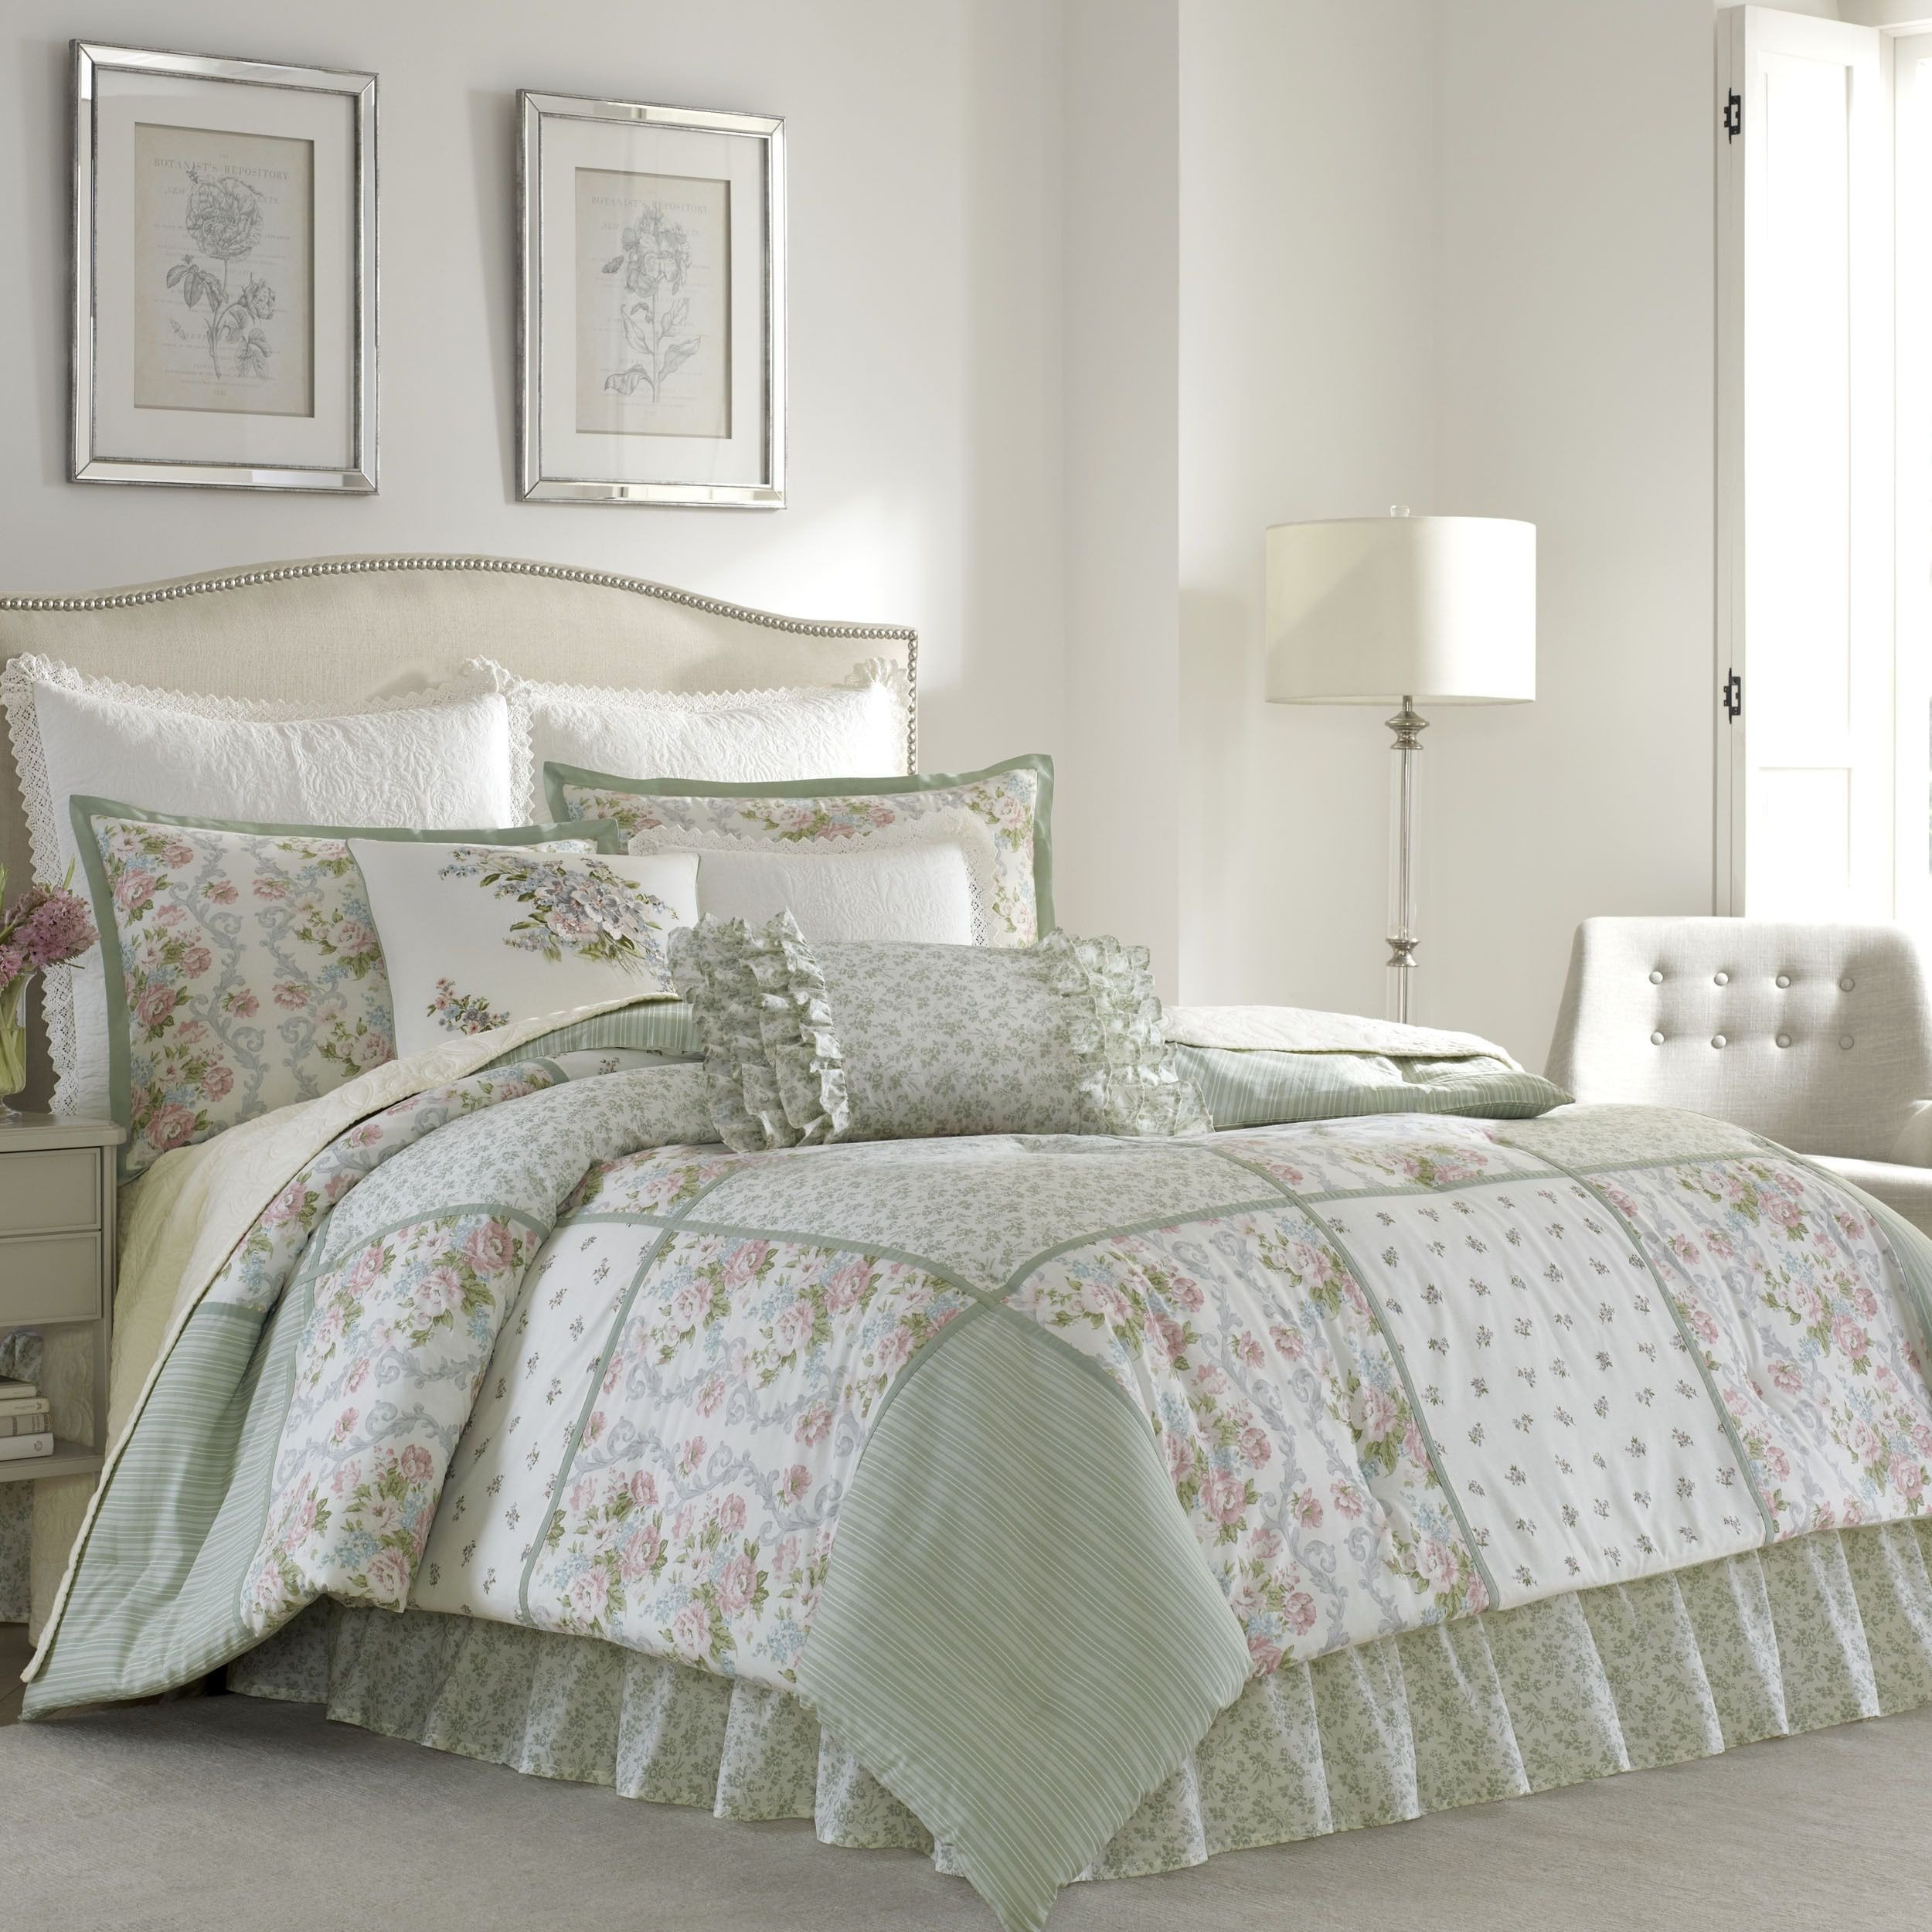 Laura ashley Bedroom Set New Laura ashley forter Set Green Full